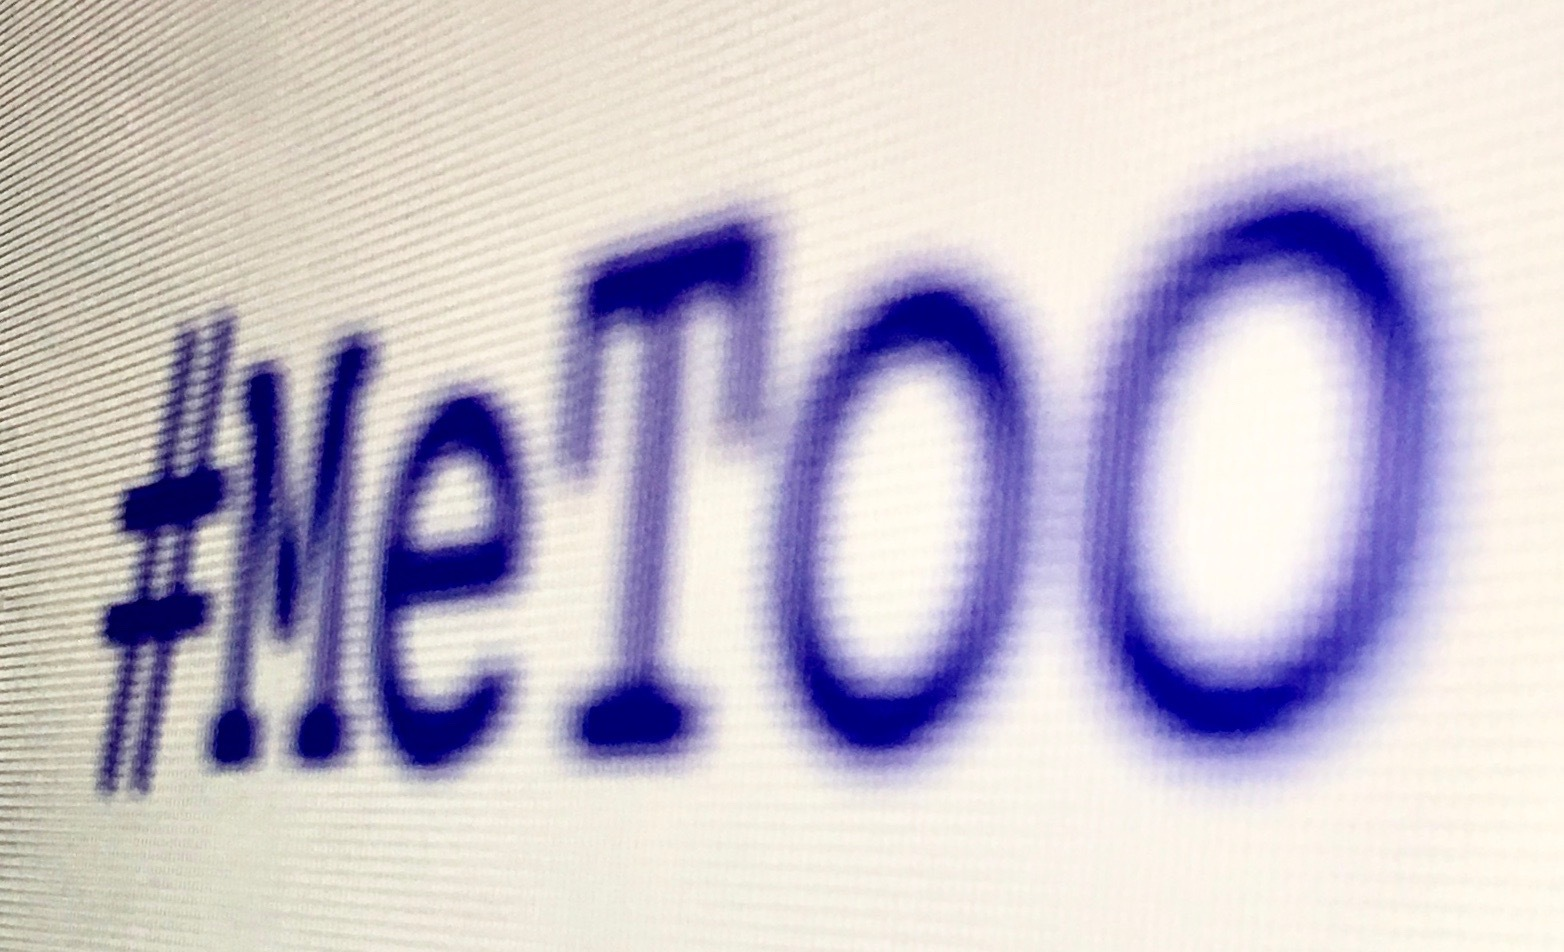 The Women's Media Center research took a close look at the press coverage five months before and in the 10 months that followed the Weinstein revelations and the rise of #MeToo.